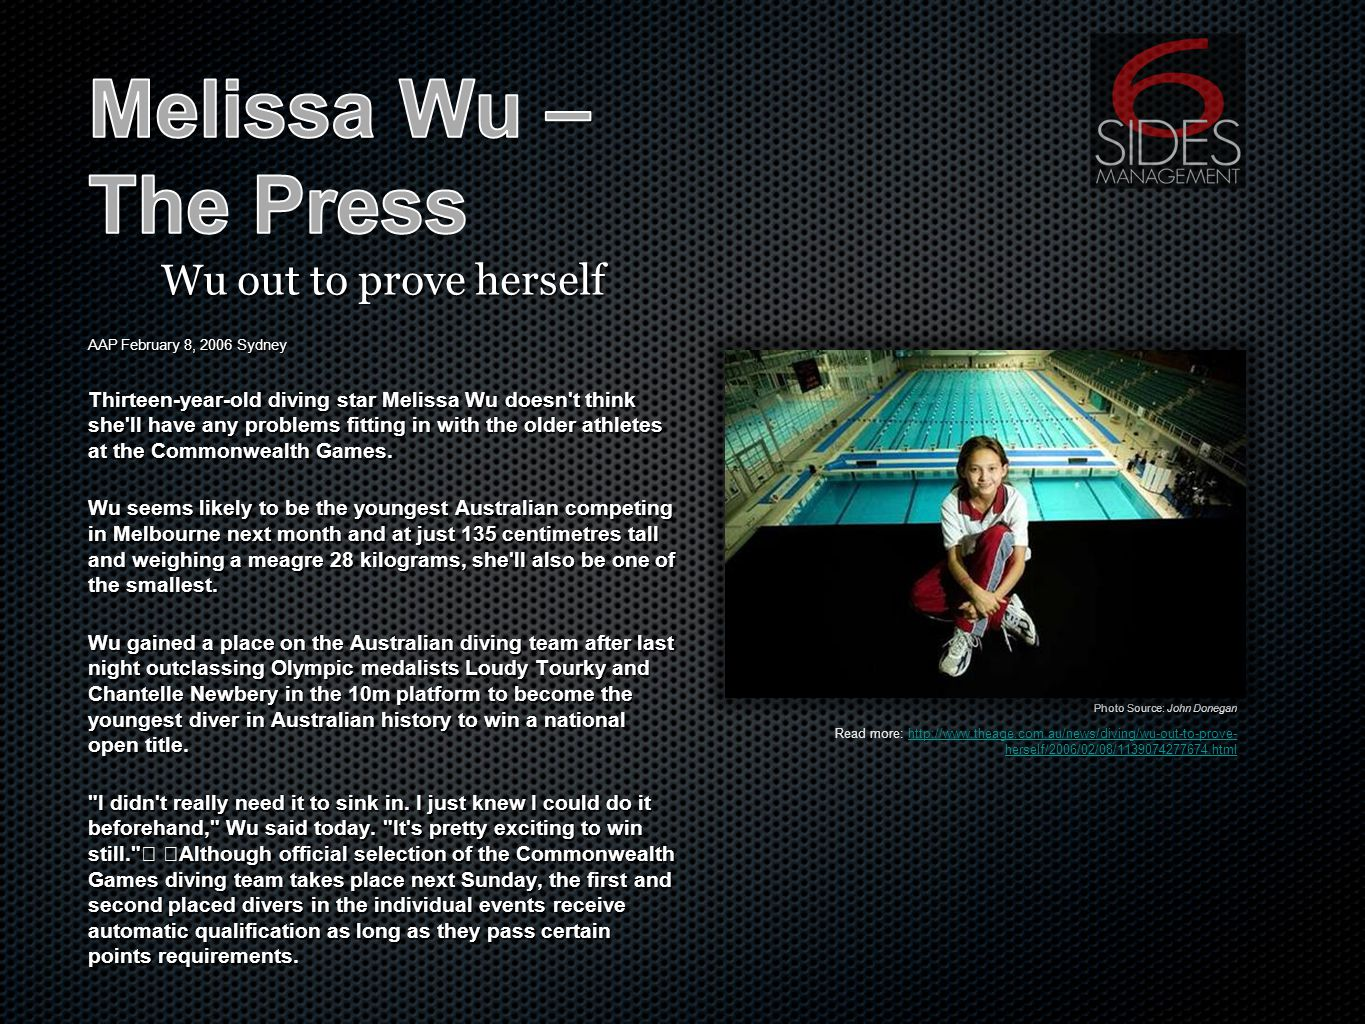 Wu out to prove herself AAP February 8, 2006 Sydney Thirteen-year-old diving star Melissa Wu doesn t think she ll have any problems fitting in with the older athletes at the Commonwealth Games.